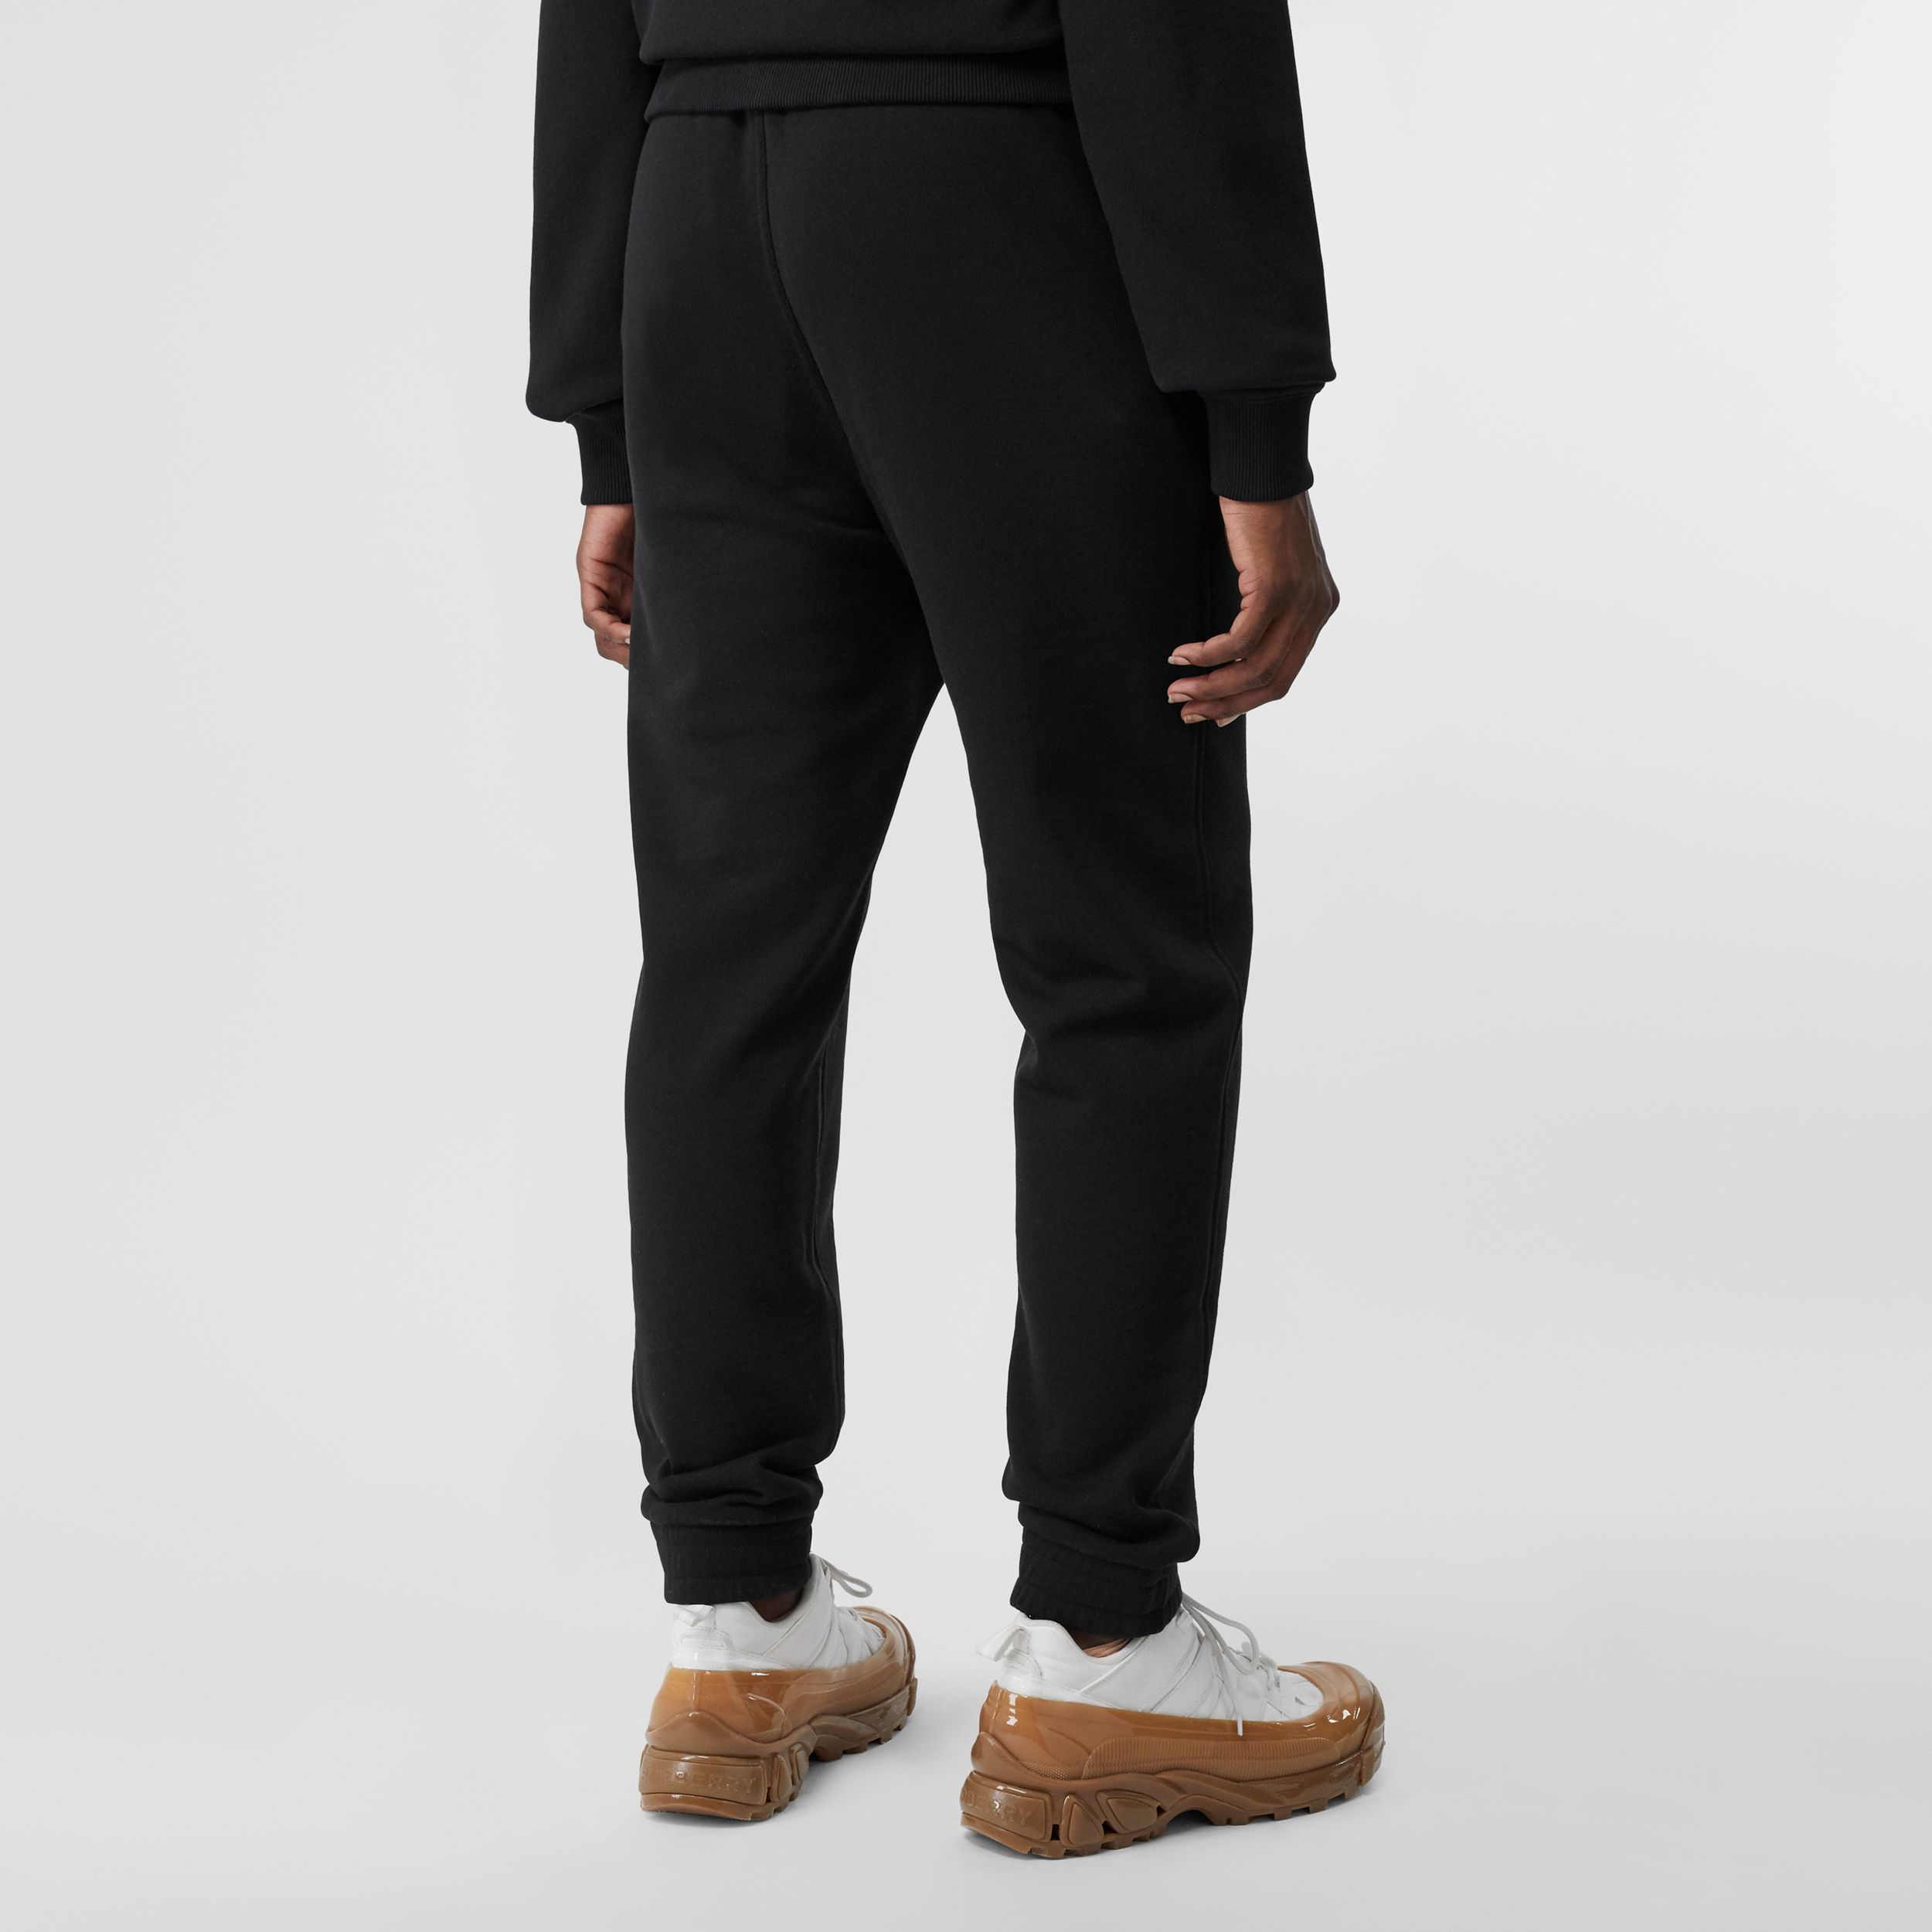 Monogram Motif Cotton Jogging Pants in Black - Women | Burberry - 3